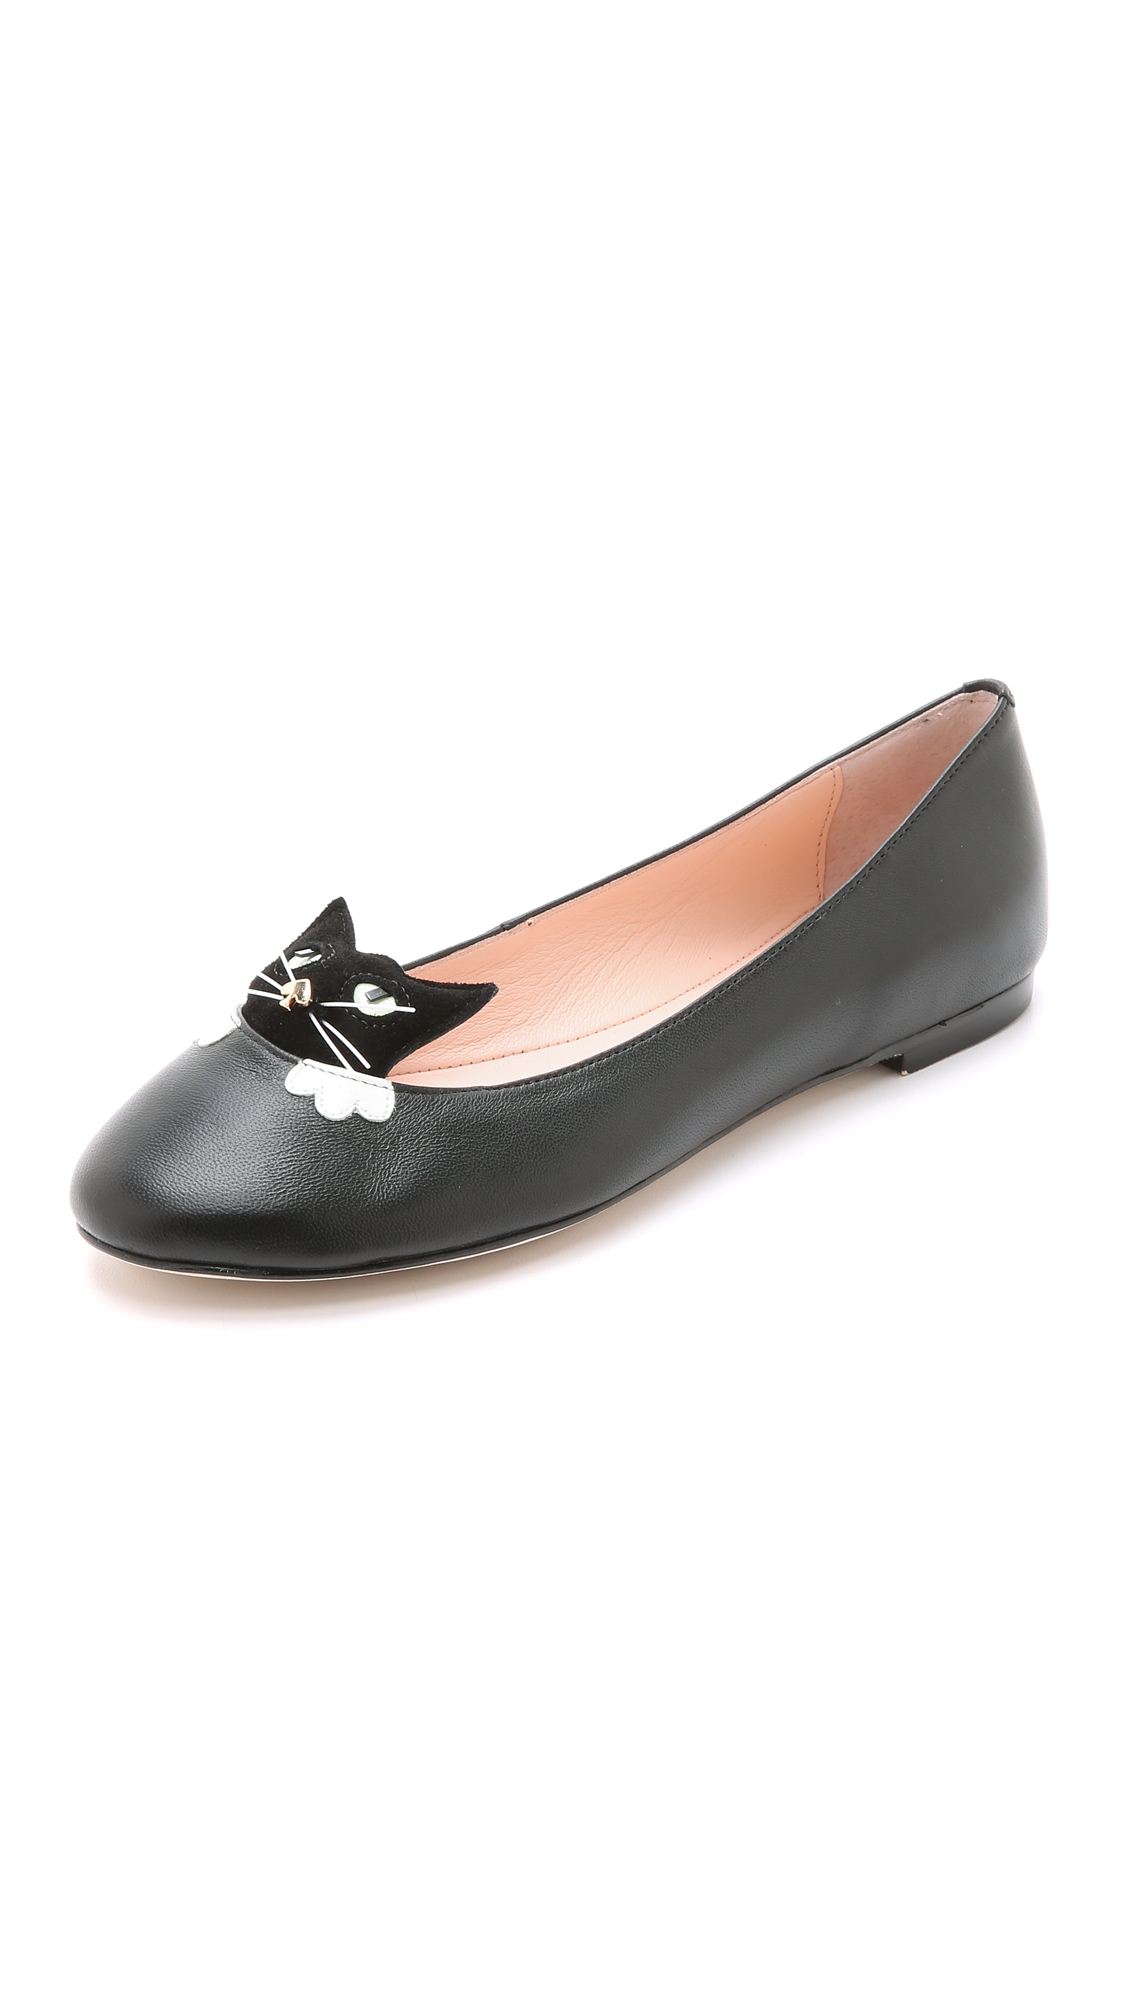 Kate Spade Whiskers Cat-Paneled Leather Flats In Black